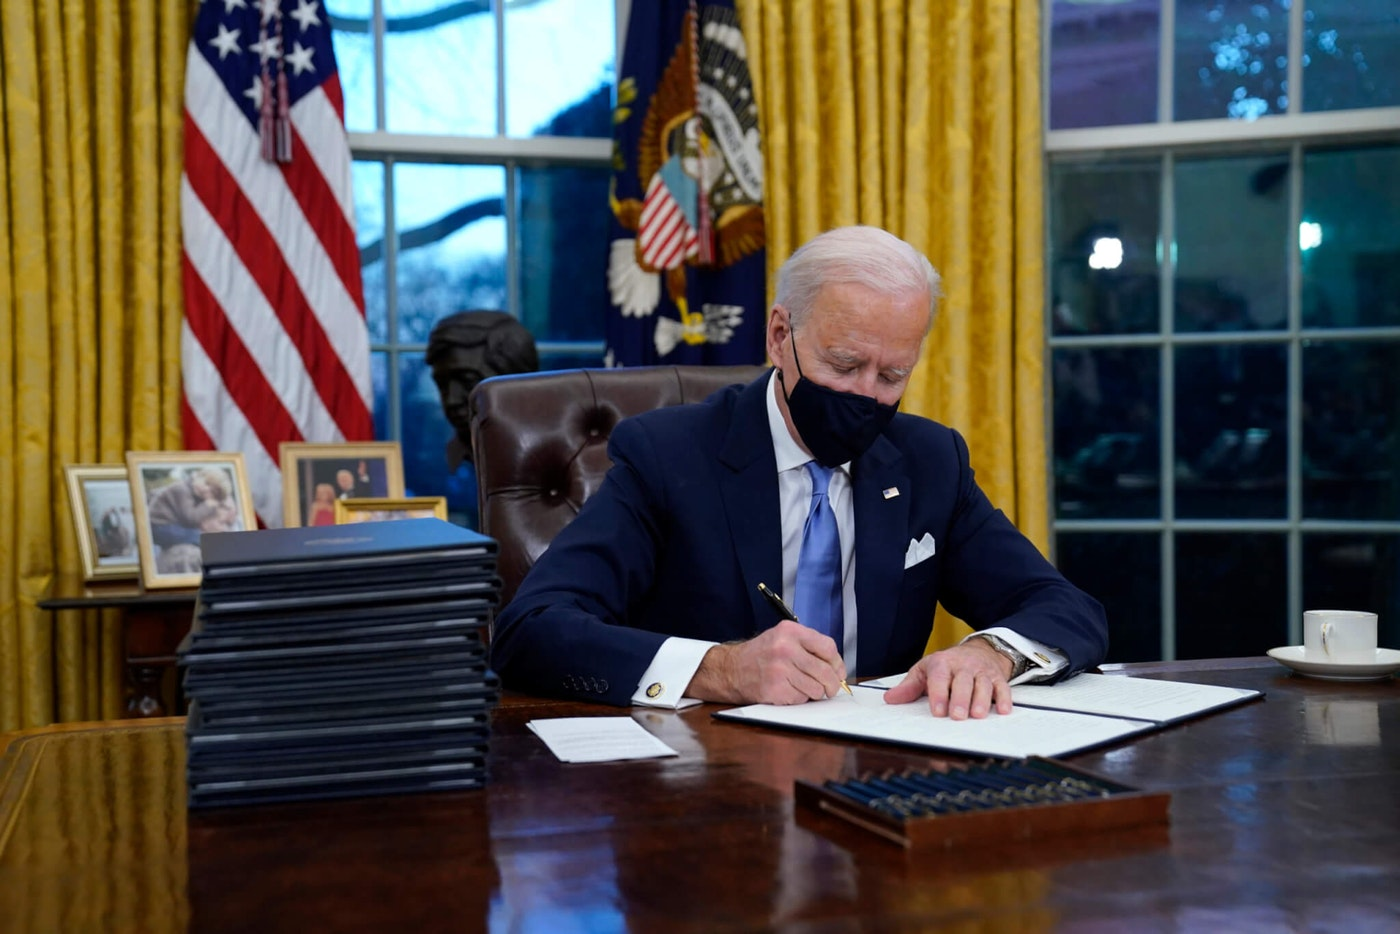 President Joe Biden signs his first executive order in the Oval Office of the White House on Wednesday, Jan. 20, 2021, in Washington.